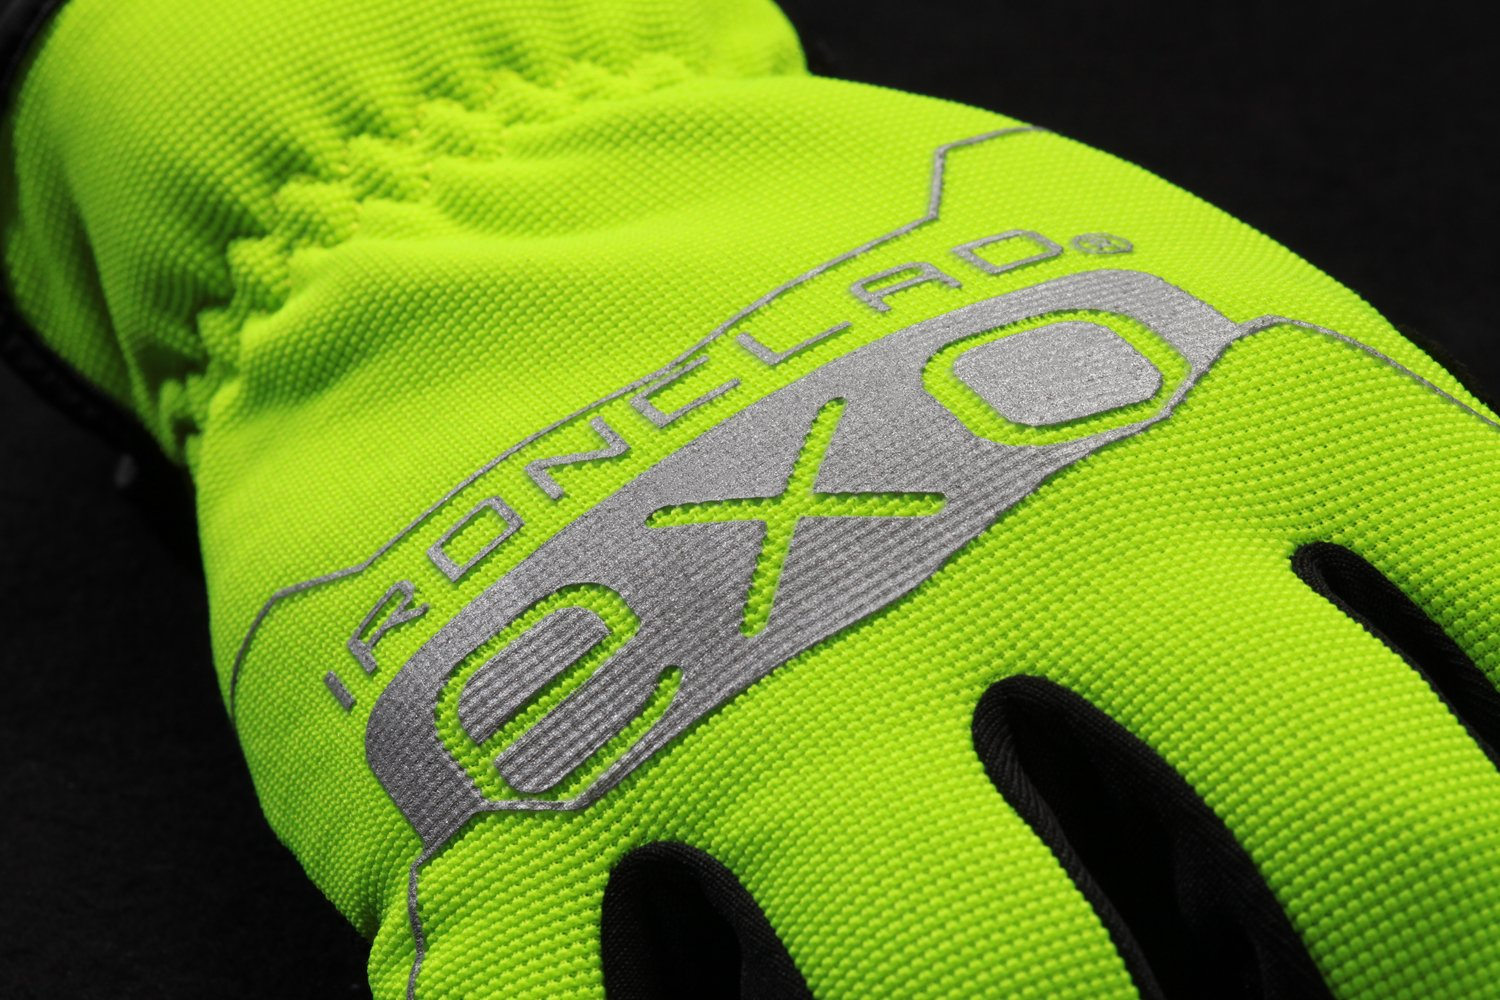 Yellow Ironclad EXOT-PSUY-05-XL Tactical Public Safety Utility Glove X-Large